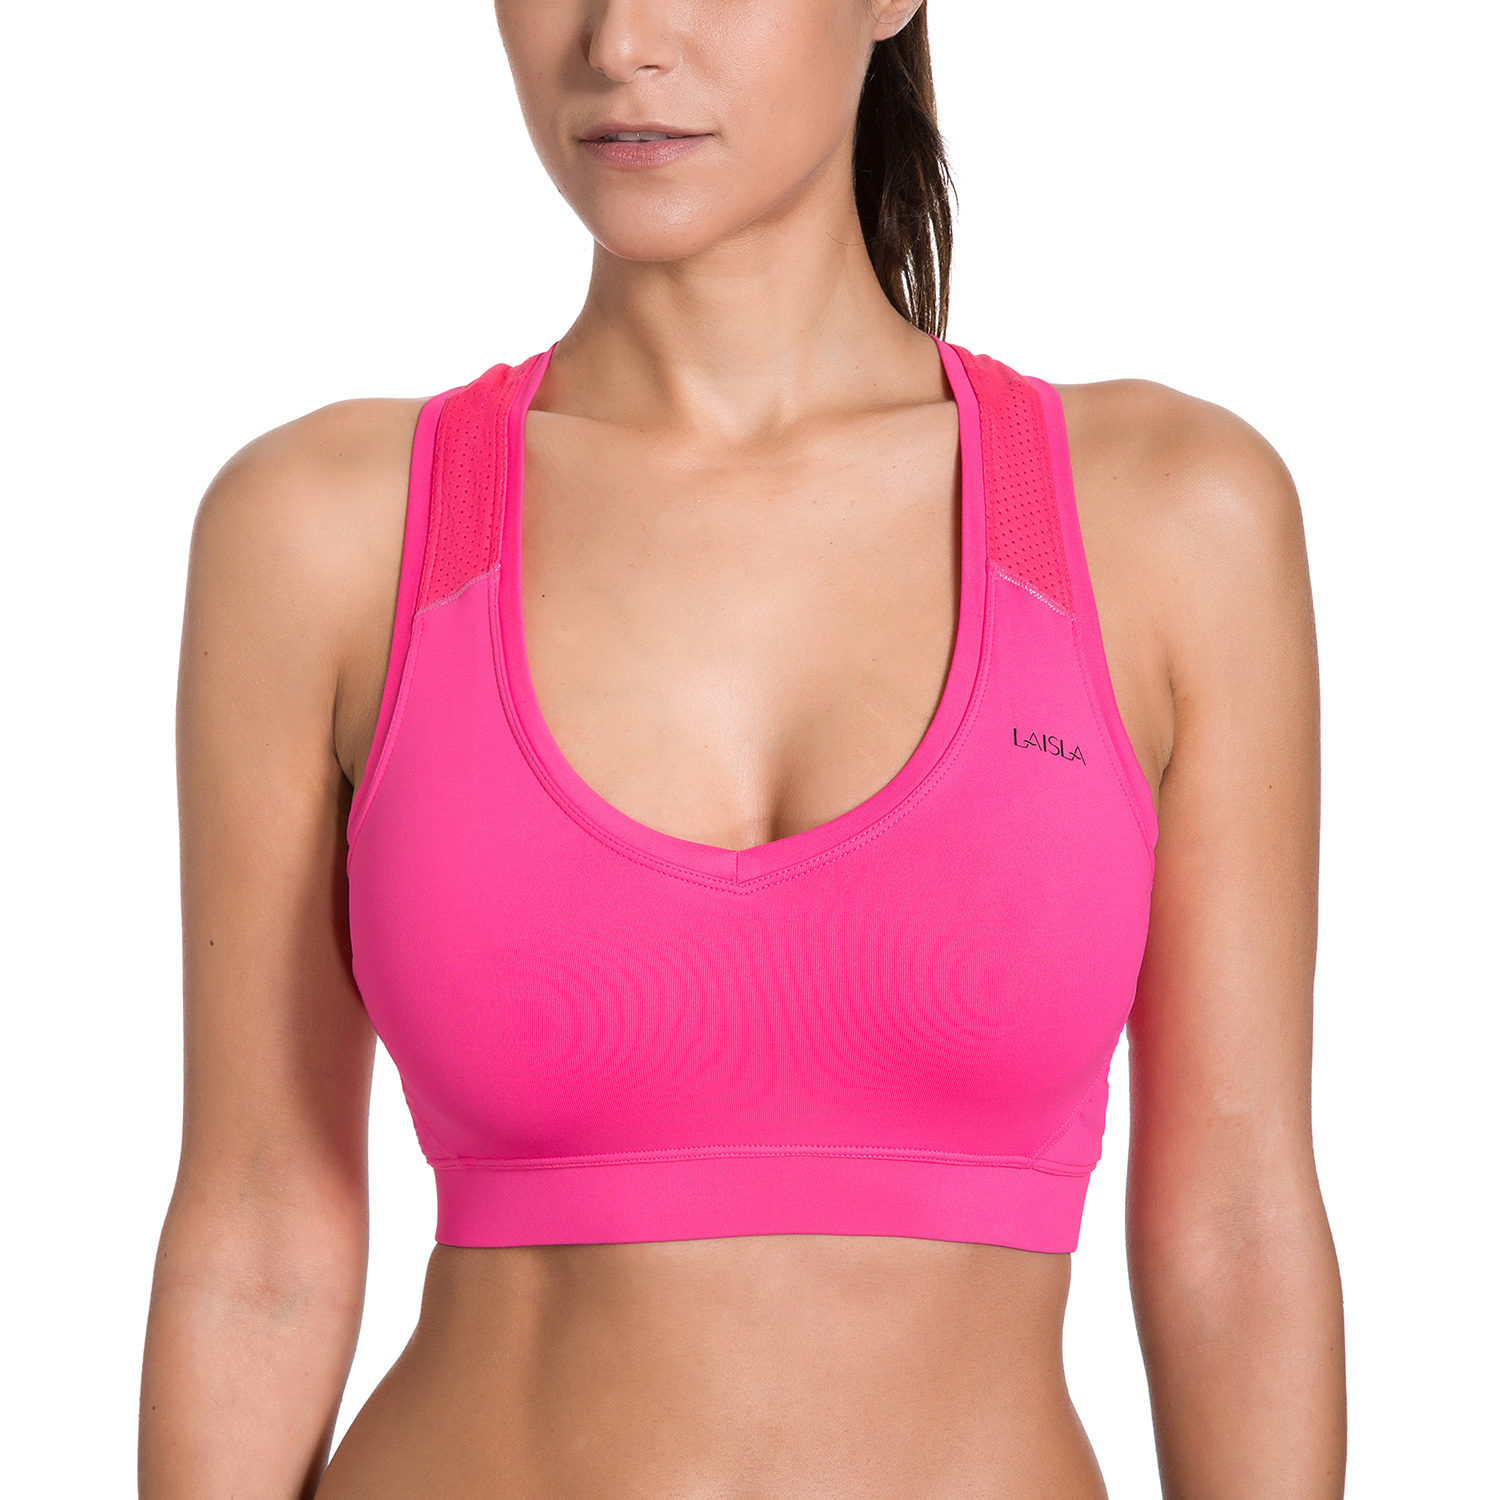 Women's Wire Free Non Padded Mesh Racerback Sports Bra Top недорго, оригинальная цена